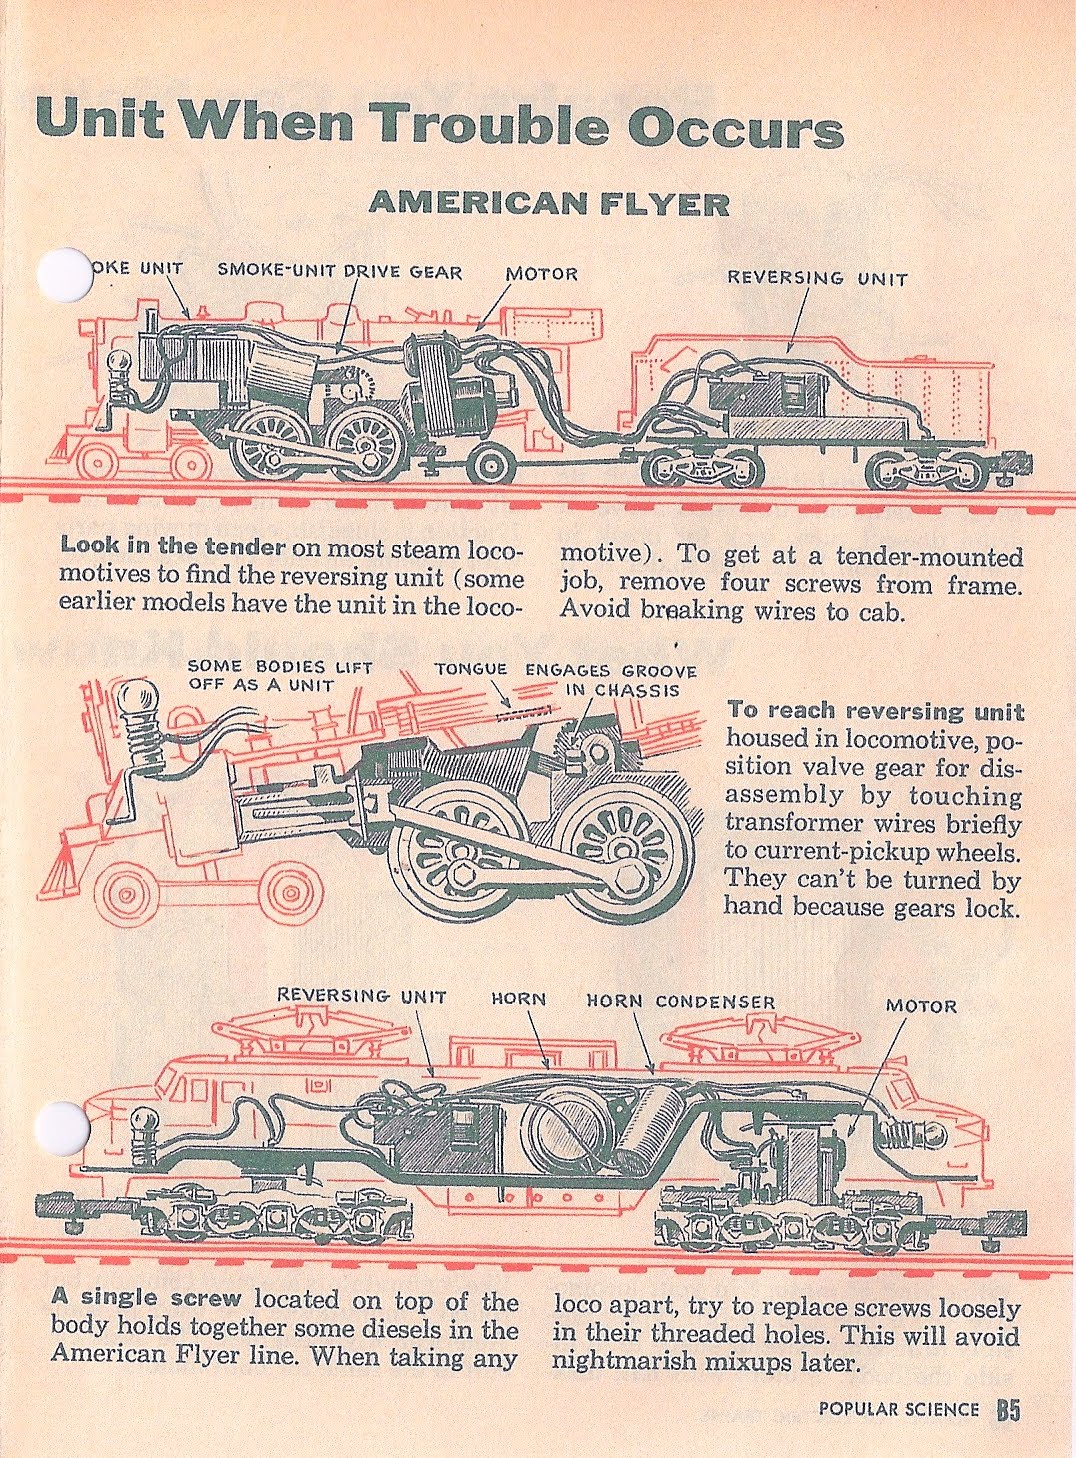 american flyer cabinet top train layout wiring diagram for american flyerr steam locomotive [ 1076 x 1458 Pixel ]